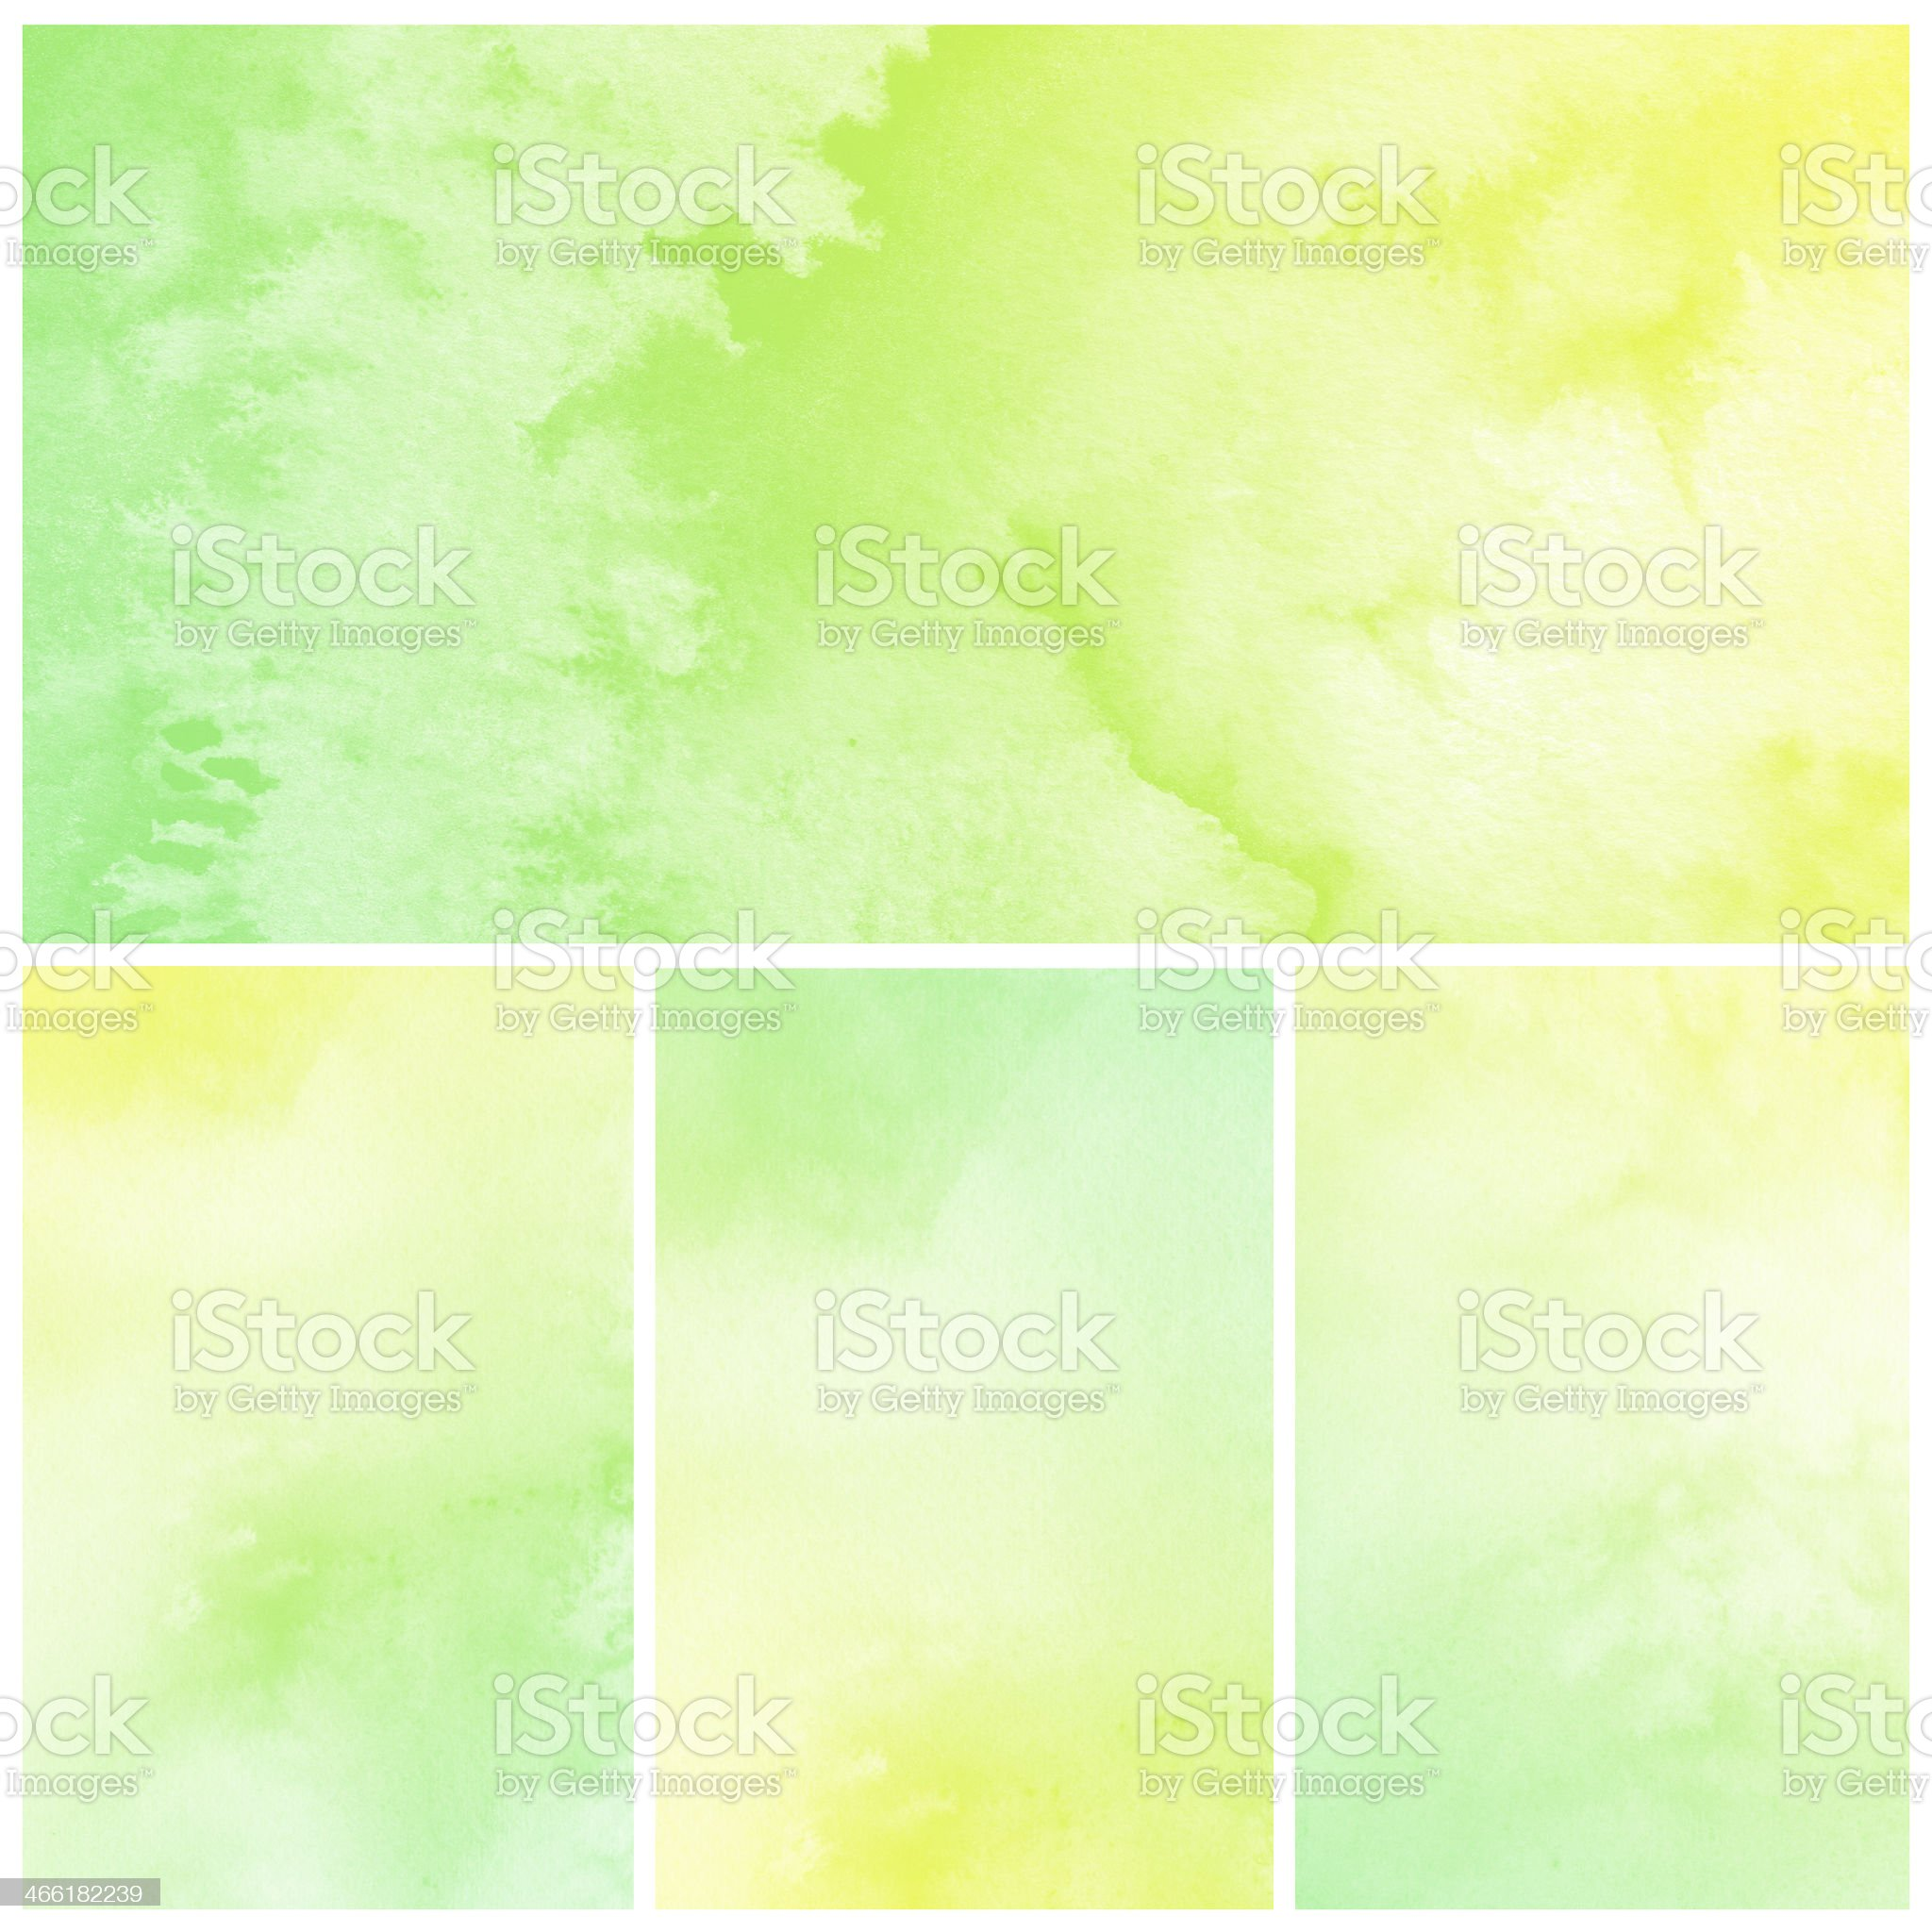 Green and yellow watercolor abstract pictures royalty-free stock vector art